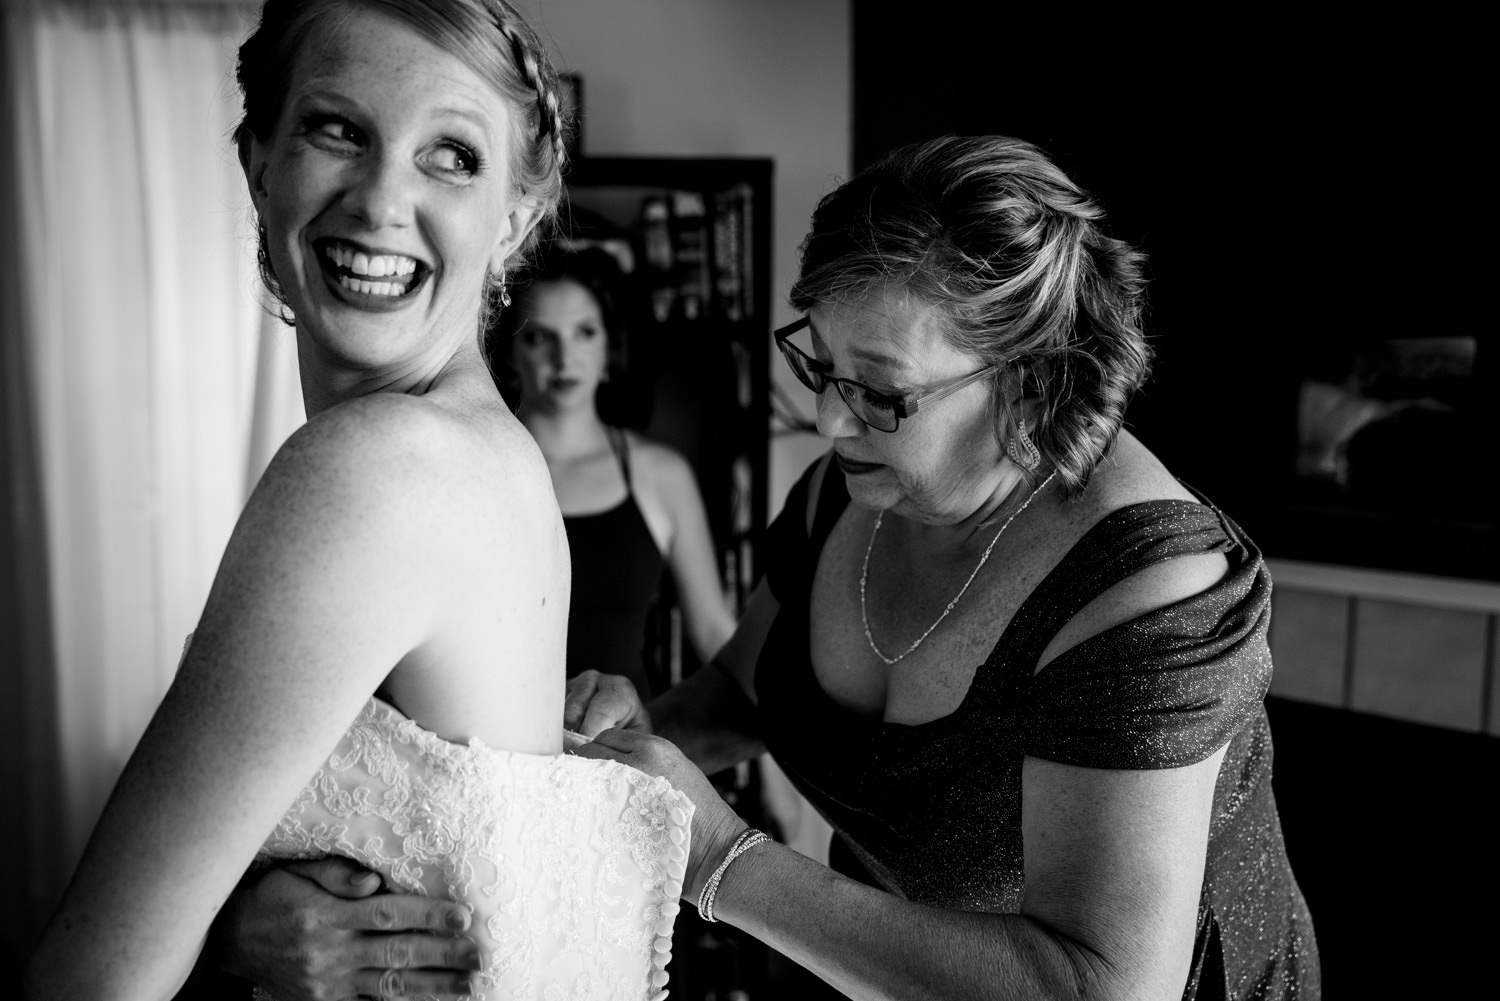 Getting ready for Boulder Colorado wedding at Sunrise Amphitheater by wedding photographer, JMGant Photography